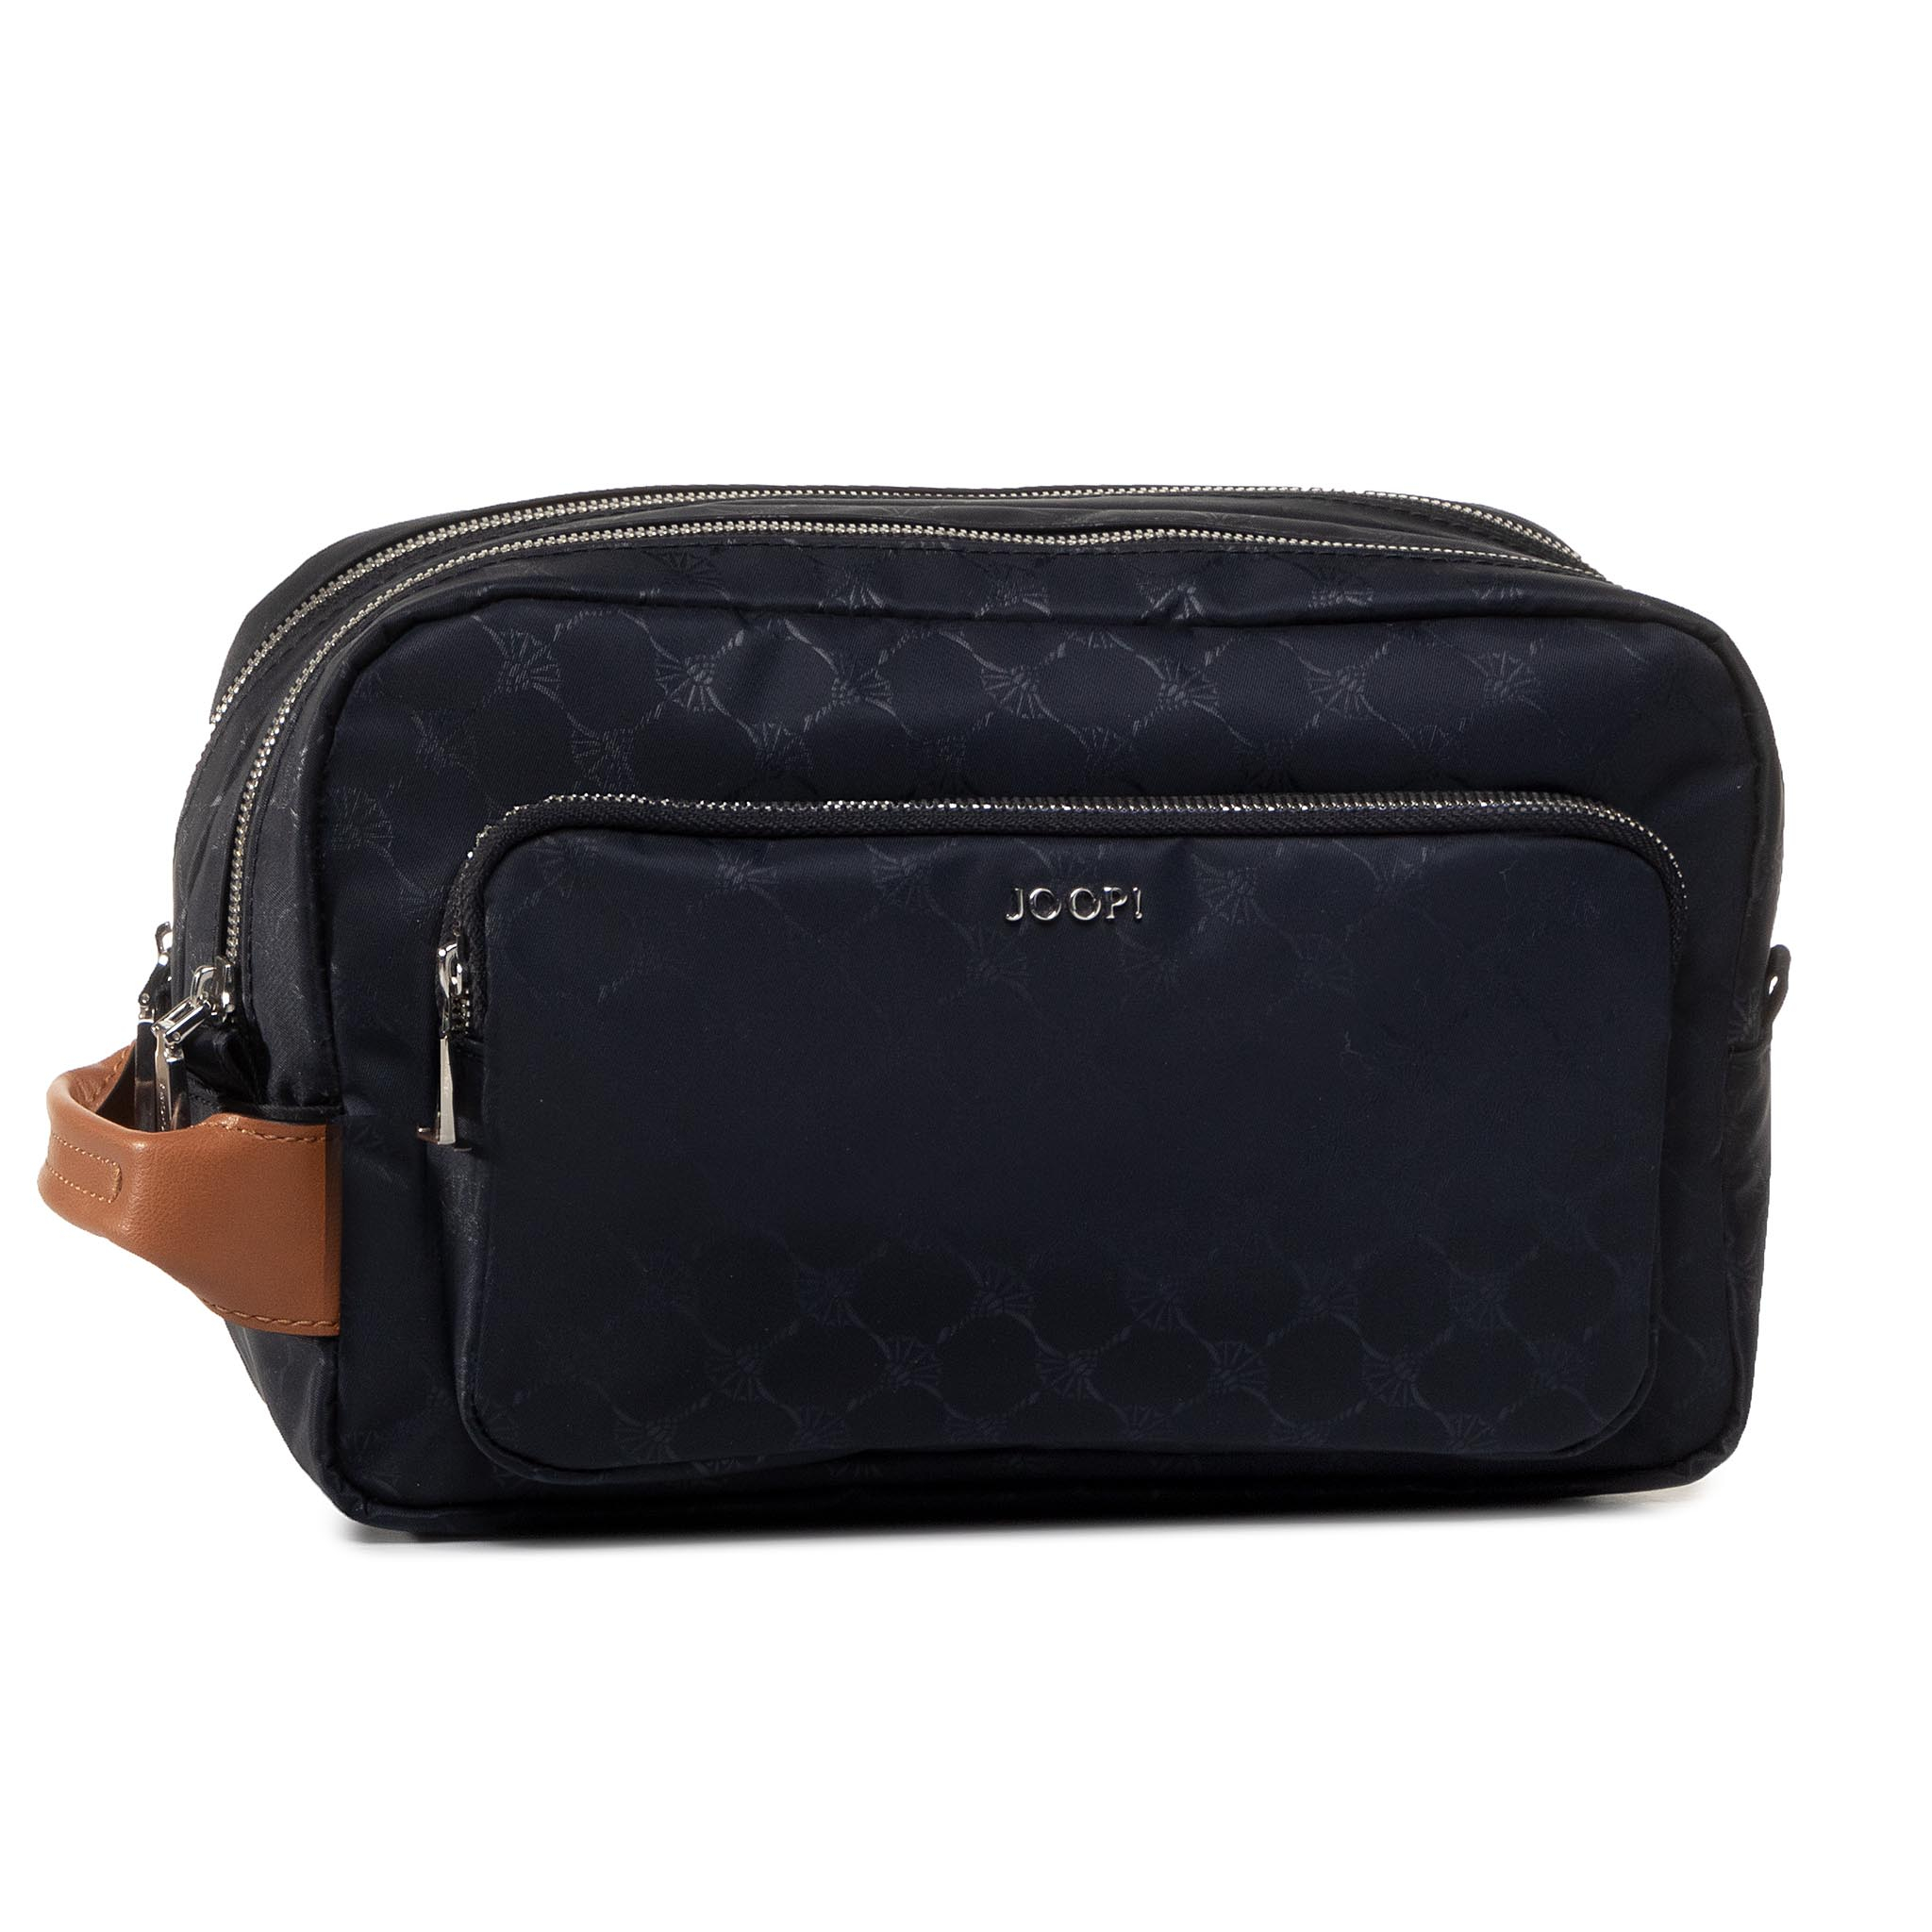 Geantă Pentru Cosmetice Joop! - Molly Washbag 4140004775 Night Blue 403 imagine epantofi.ro 2021